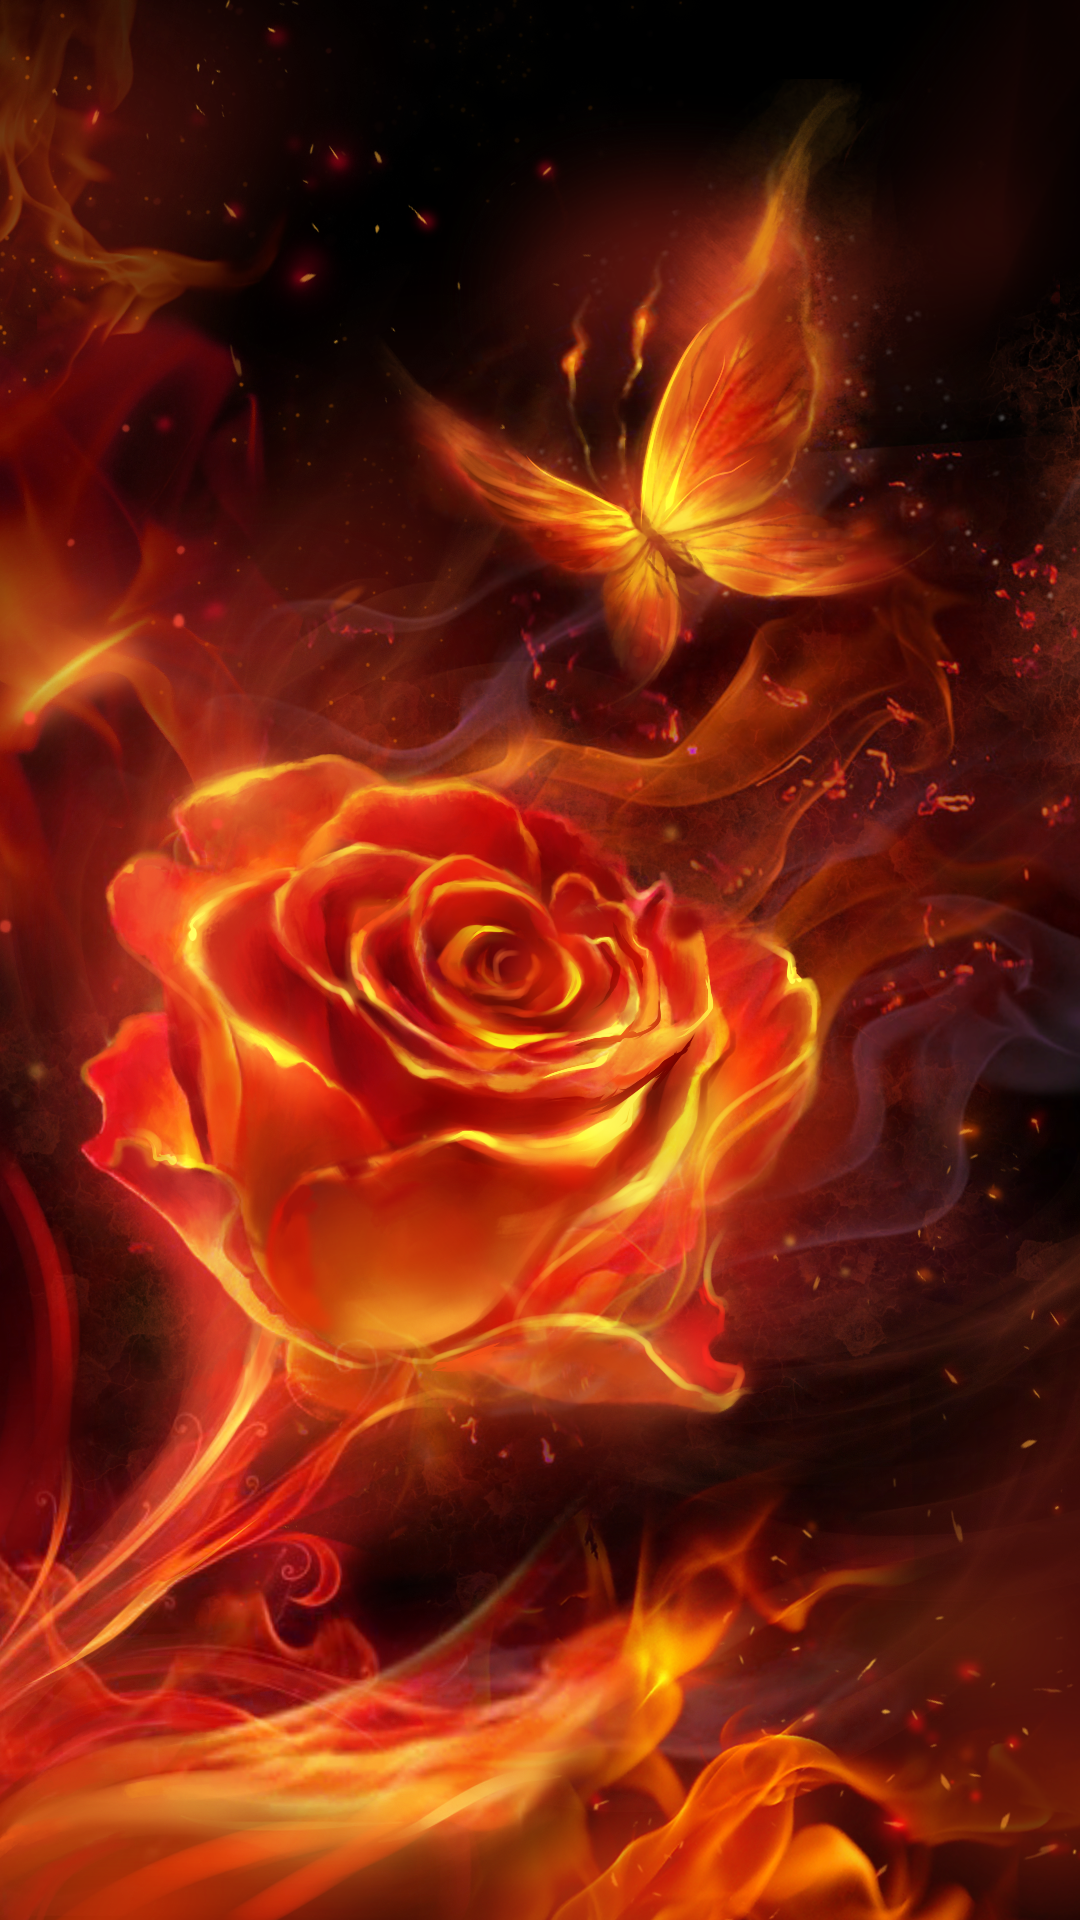 Fiery Rose And Butterfly Flame Live Wallpaper Android